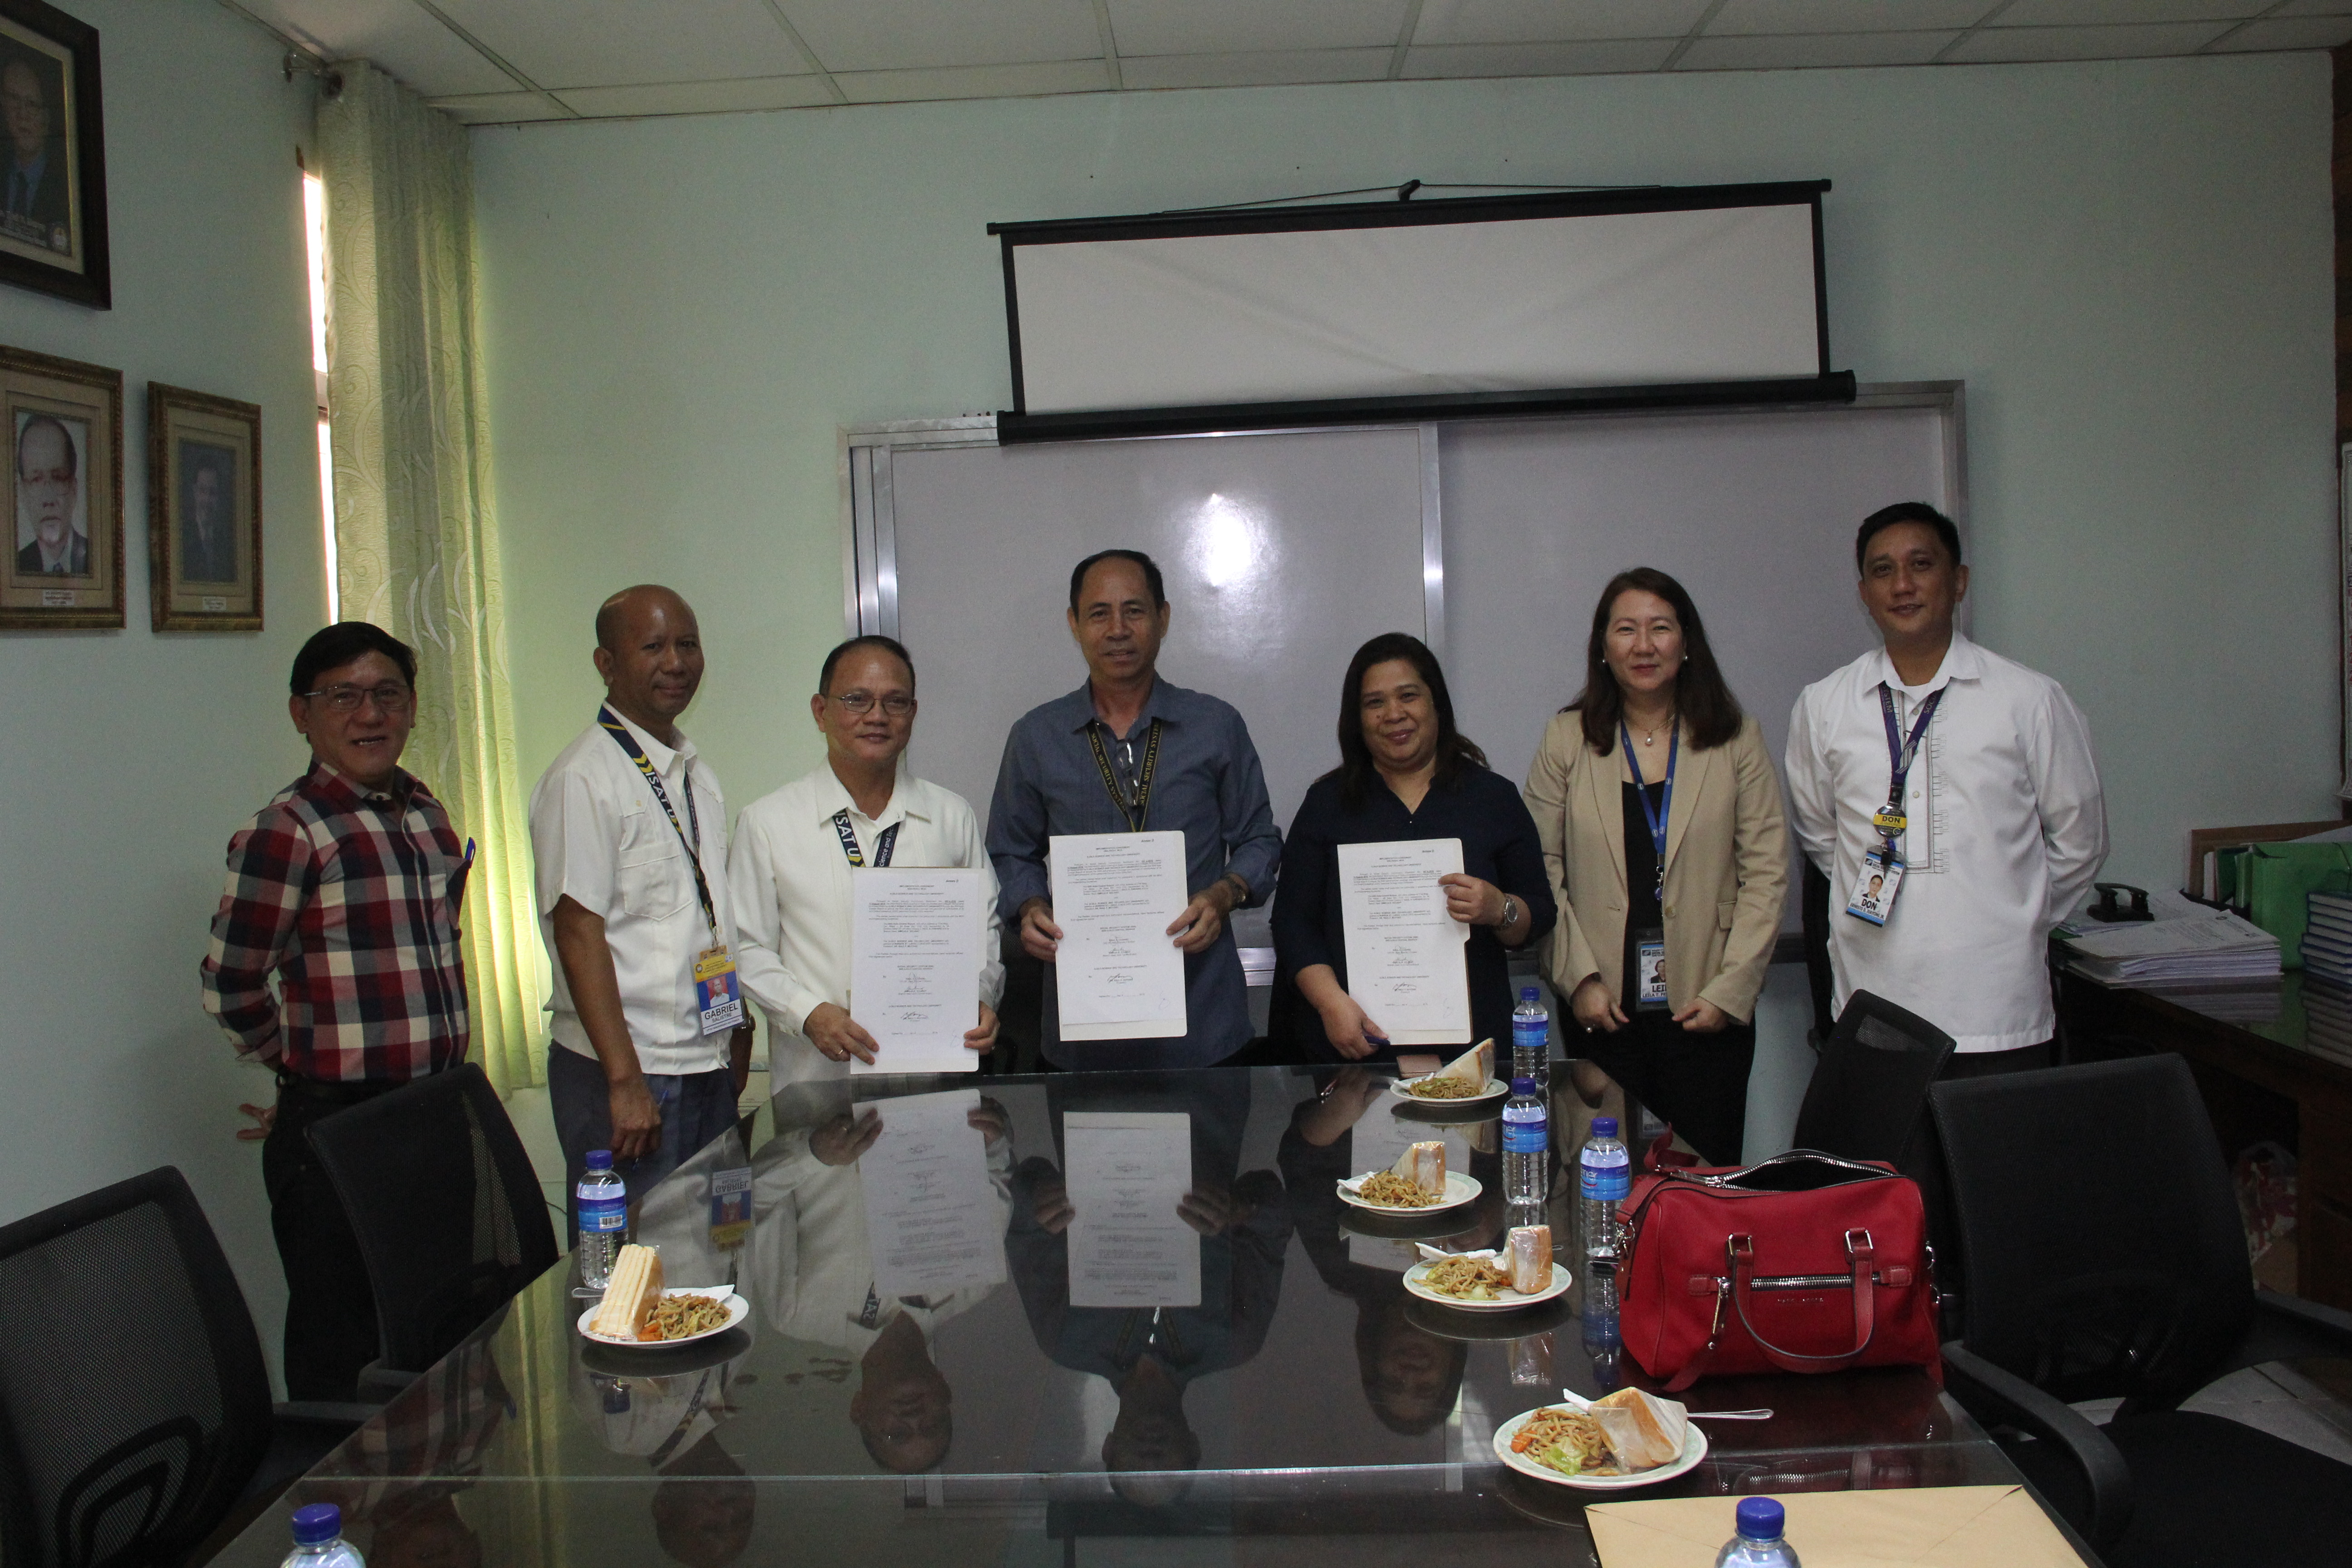 Dr. Raul F. Muyong and Mr. Raul A. Casiano, Branch Manager, SSS Western Visayas, sign the Implementation Agreement for the PASUC-SSS Memorandum of Agreement for the registration and voluntary membership of Job Order and Contract of Service Personnel on January 22,2018 at the ISAT U President's Office Conference Room. Also in photo are Mr. Bonnie S. Arenal, ISAT U HRMO; Dr. Gabriel M. Salistre, Jr., VPAF and Ms. Emelia Solinap, Leila Ferraris and Mr. Ernesto D. Juayong, Jr. of the SSS.